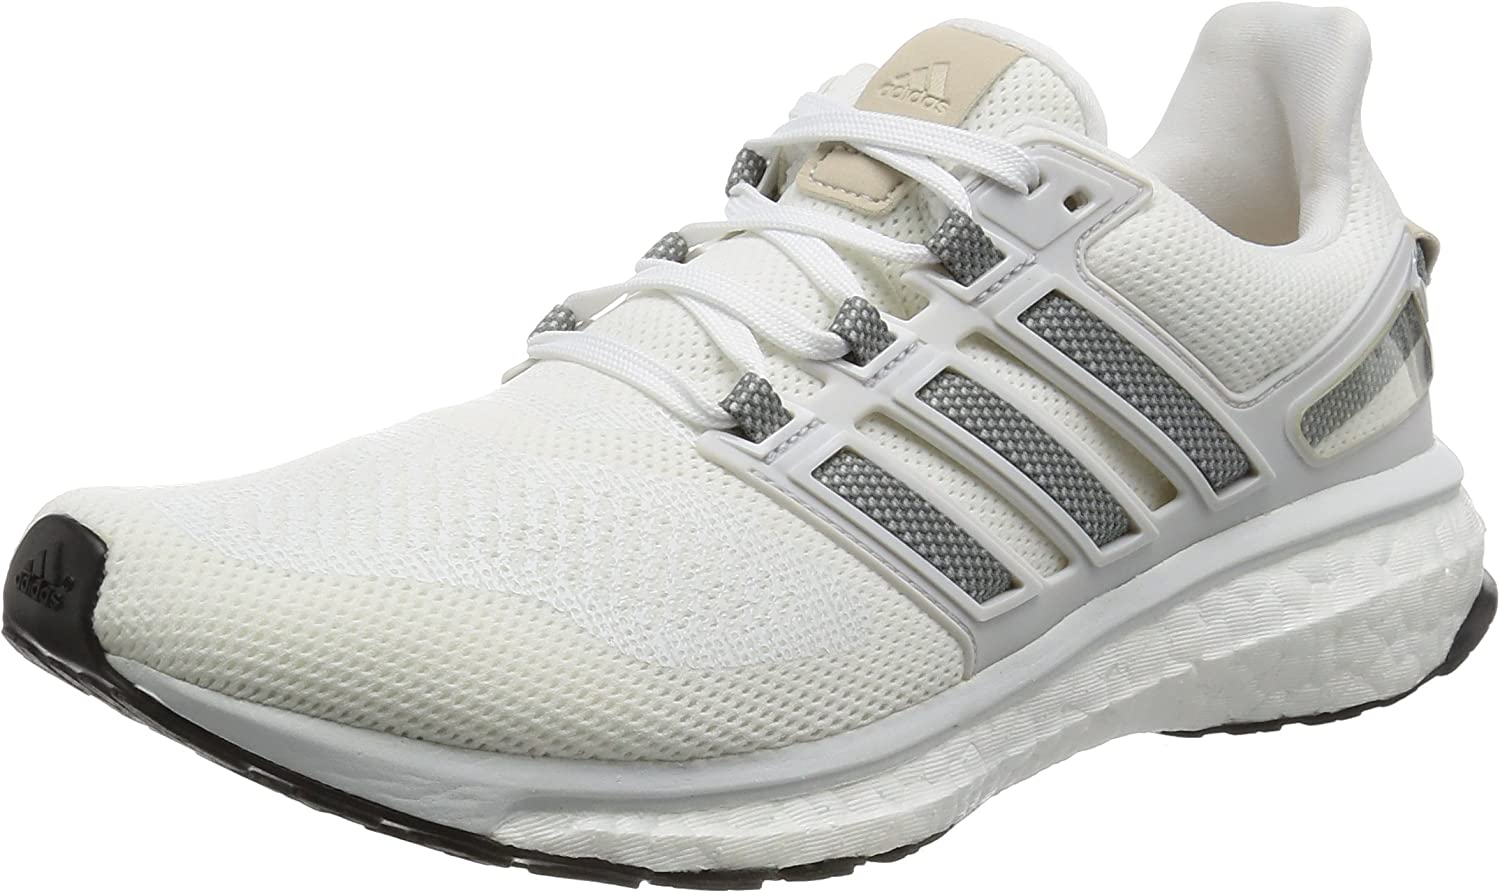 Adidas Energy Boost 3 Running shoes - AW16